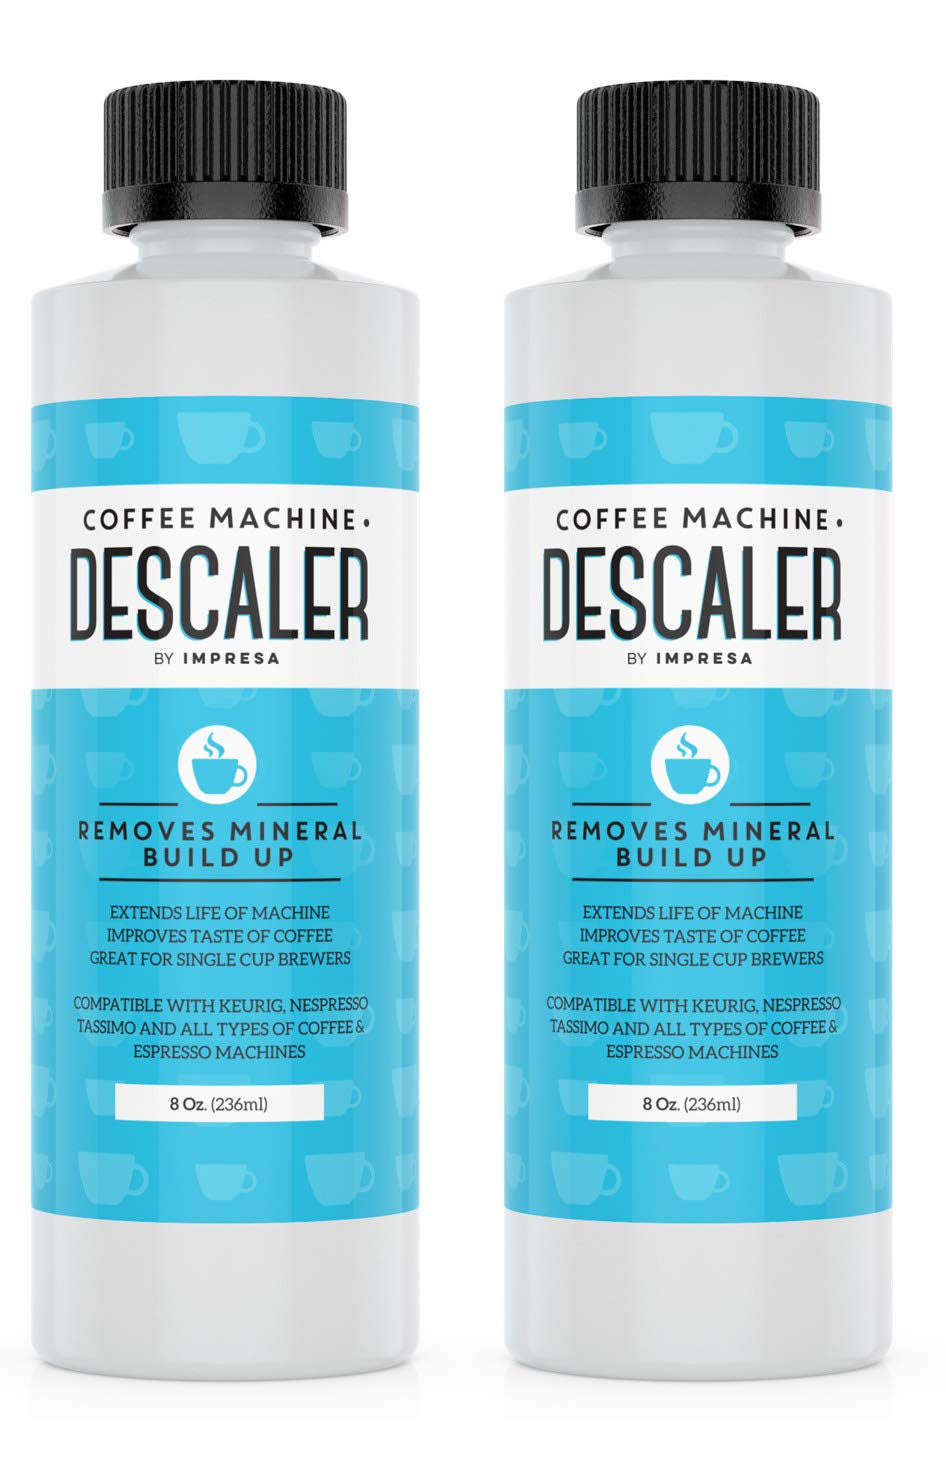 Keurig Descaler (2 Pack, 2 Uses Per Bottle) - Made in the USA - Universal Descaling Solution for Keurig, Nespresso, Delonghi and All Single Use Coffee and Espresso Machines Impresa Products BHBUSAZIN025515